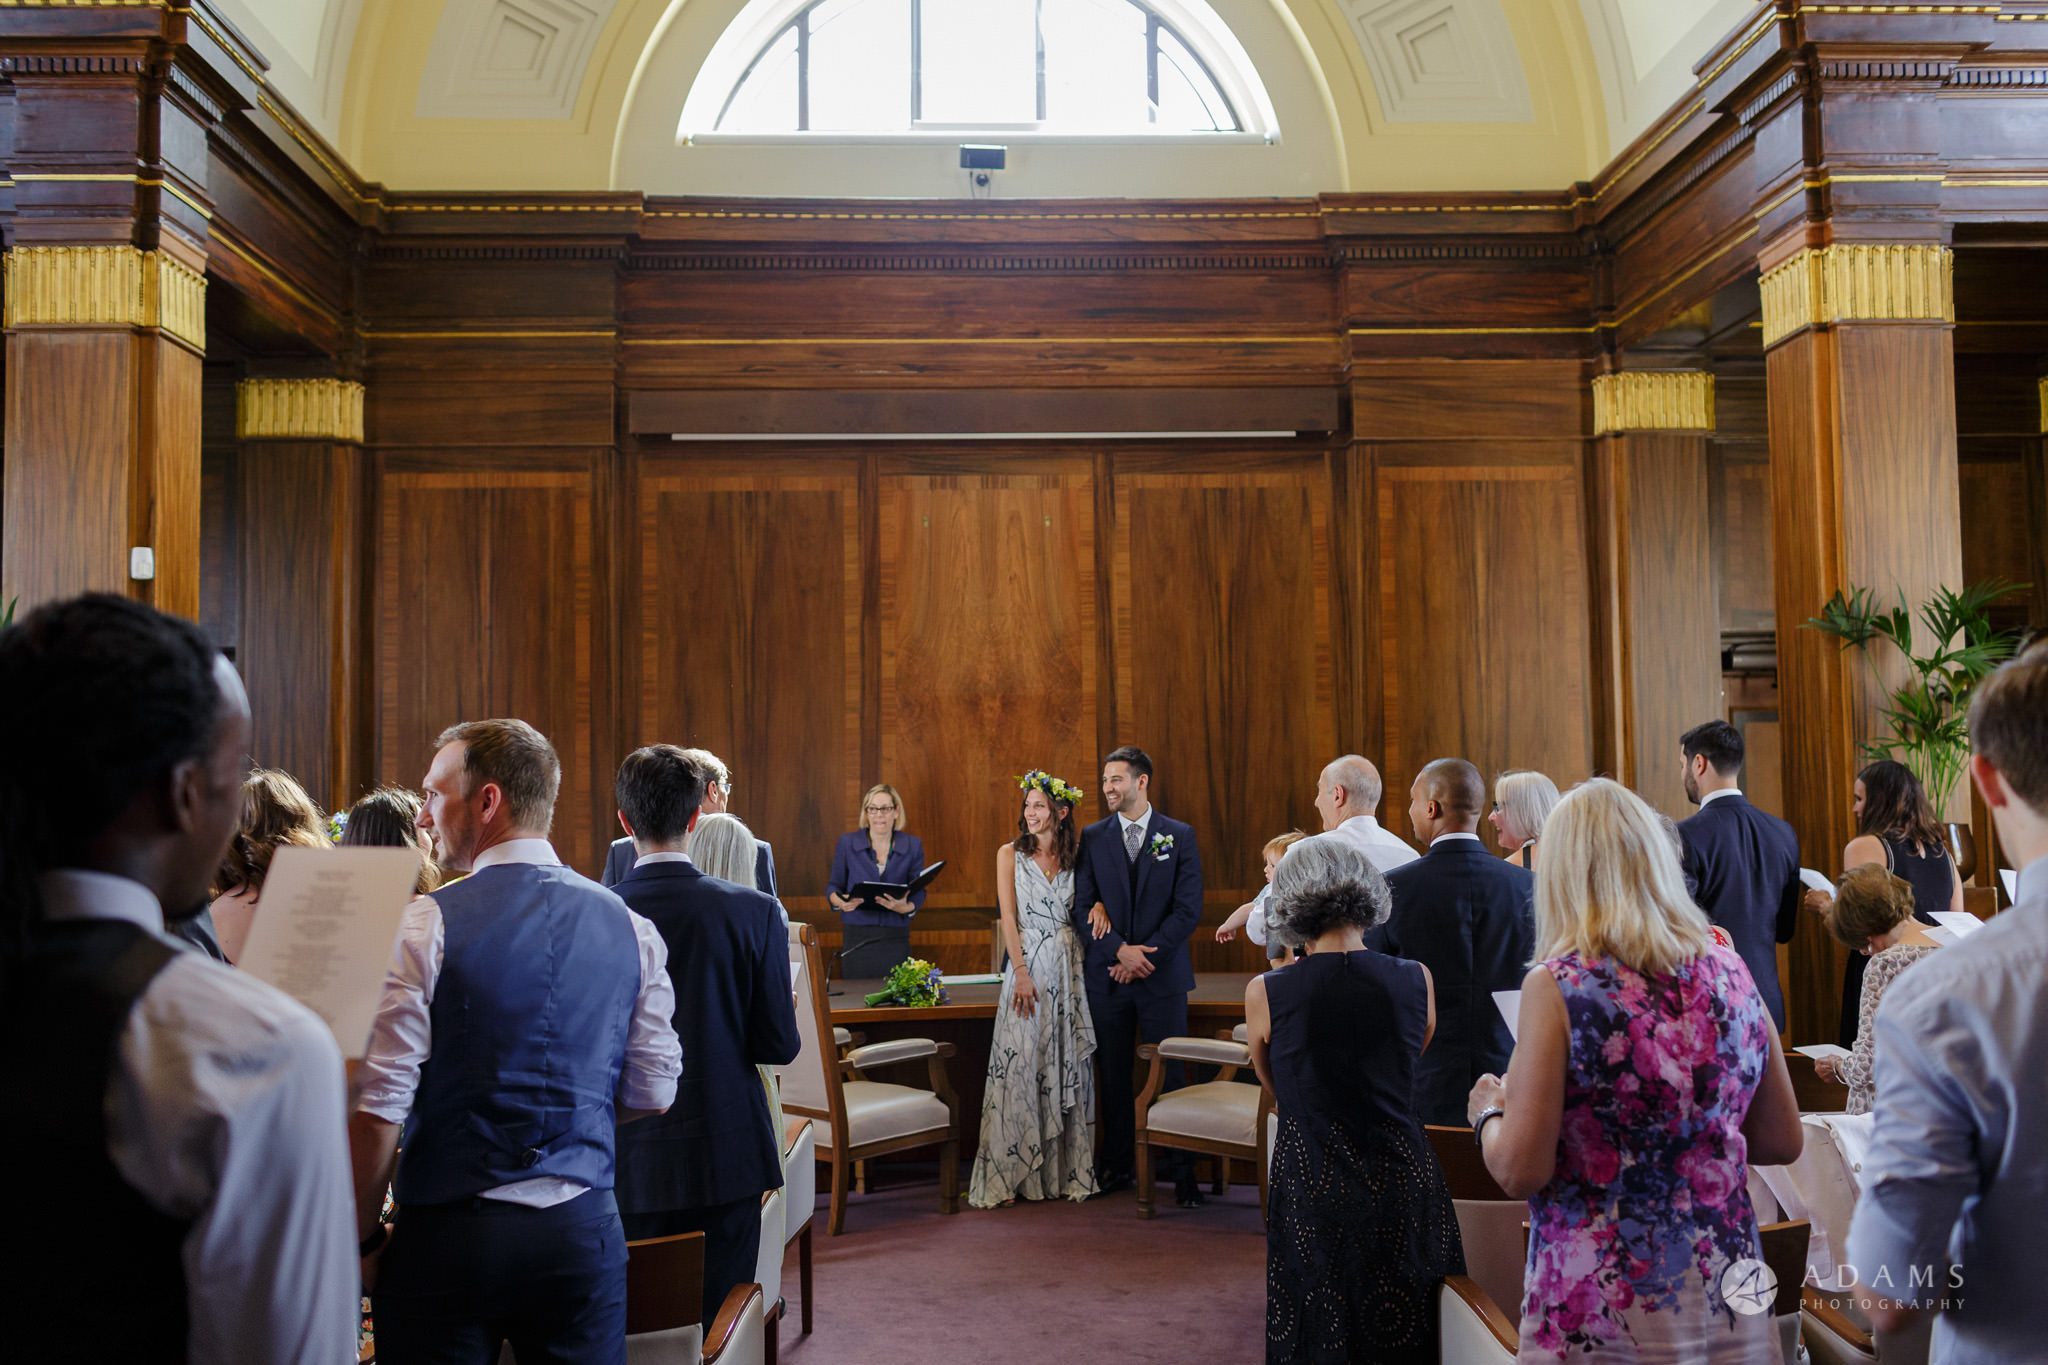 Clissold house wedding the couple is standing